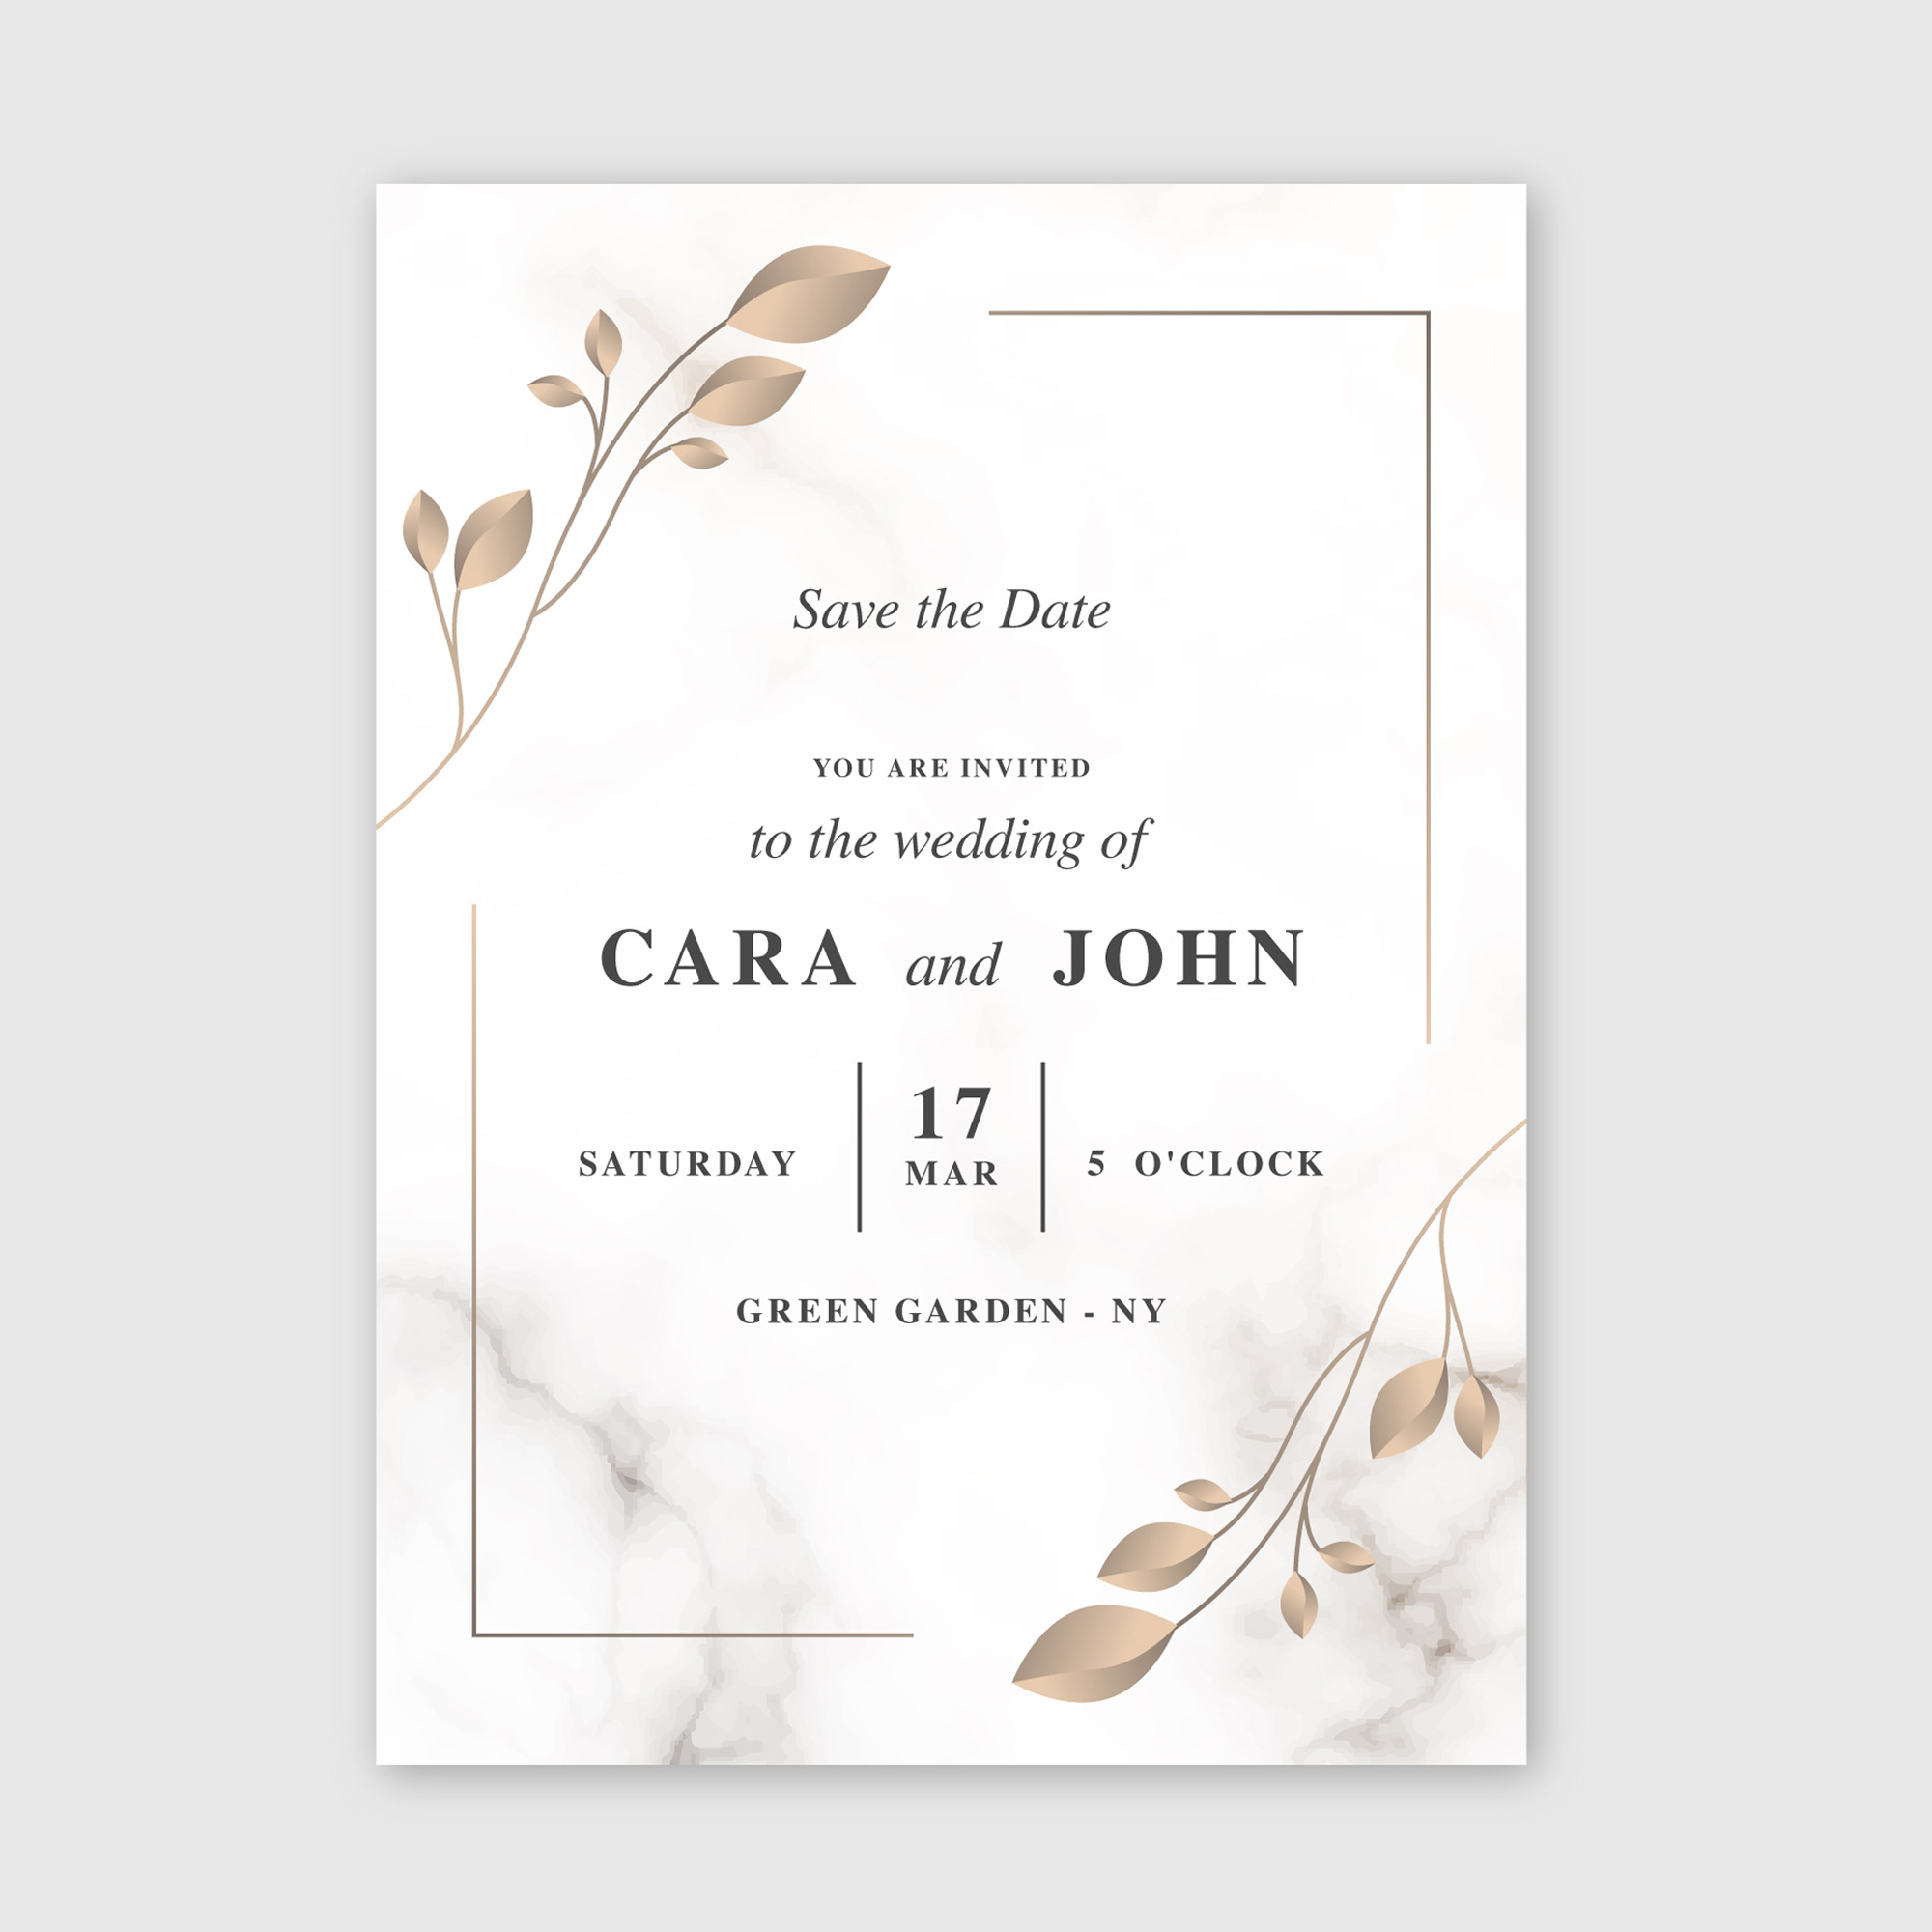 Save The Date with marble background and botanical detail